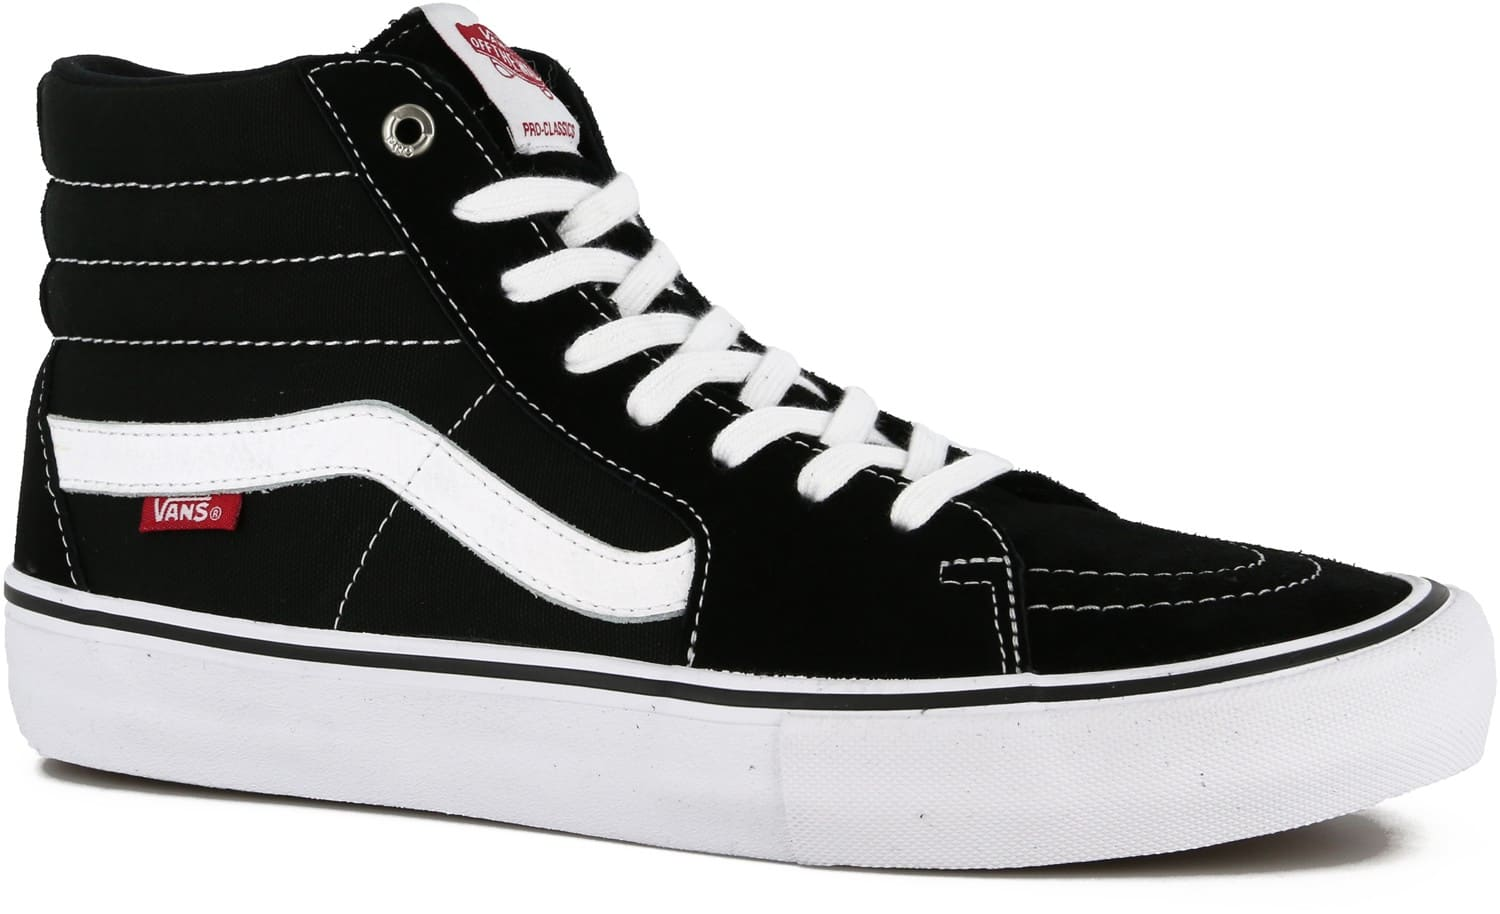 Vans Sk8-Hi Pro Skate Shoes - black/white - Free Shipping